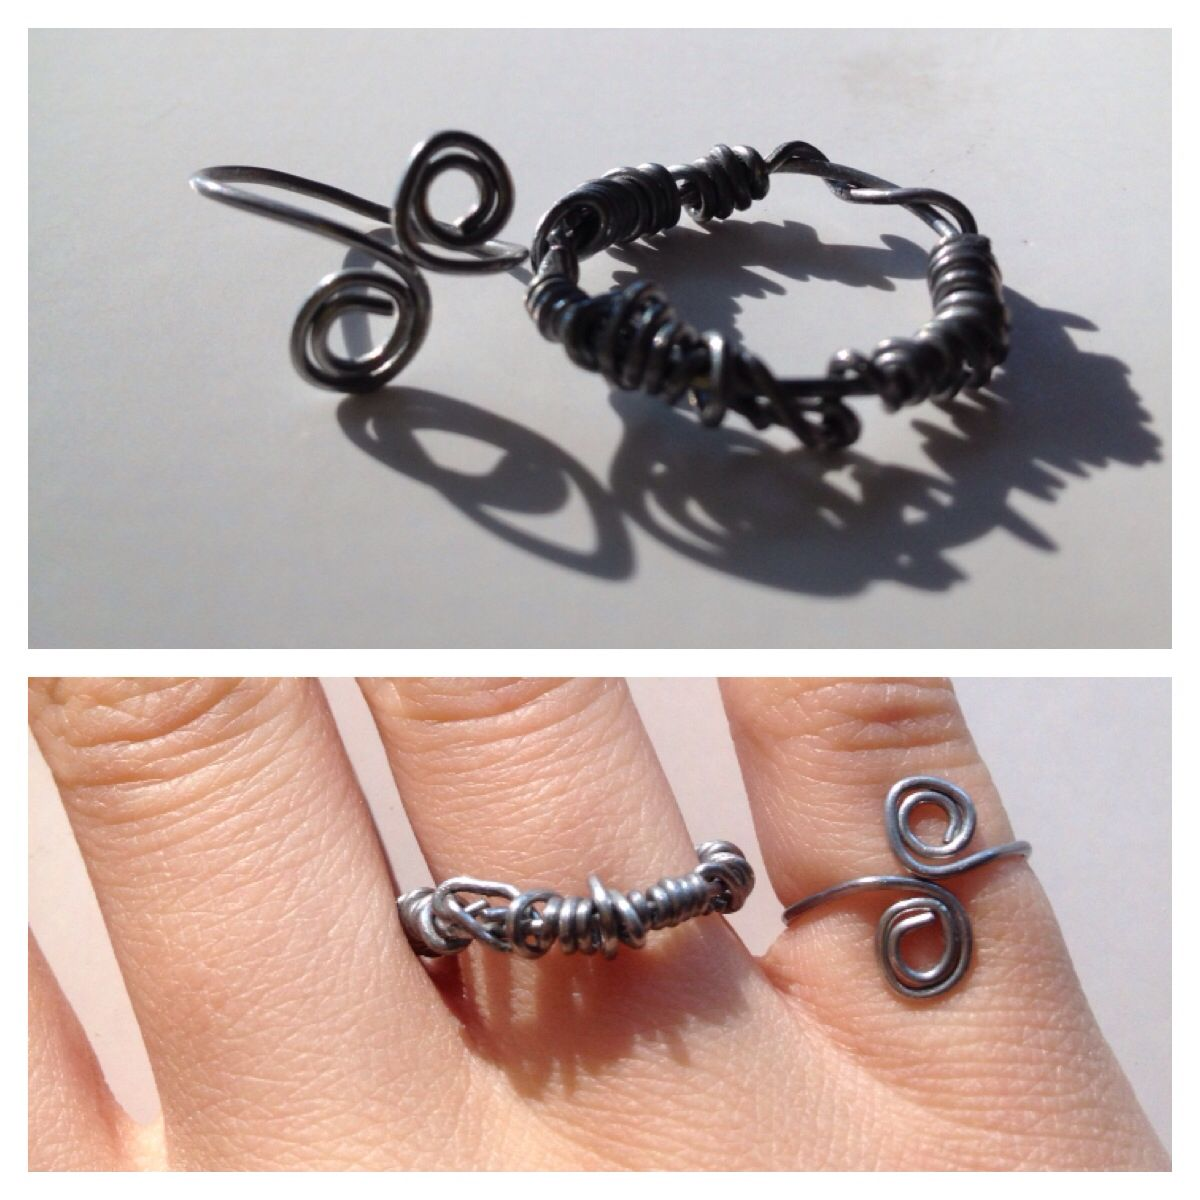 Paperclip rings•Materials/Tools used: paperclips, wire cutters ...